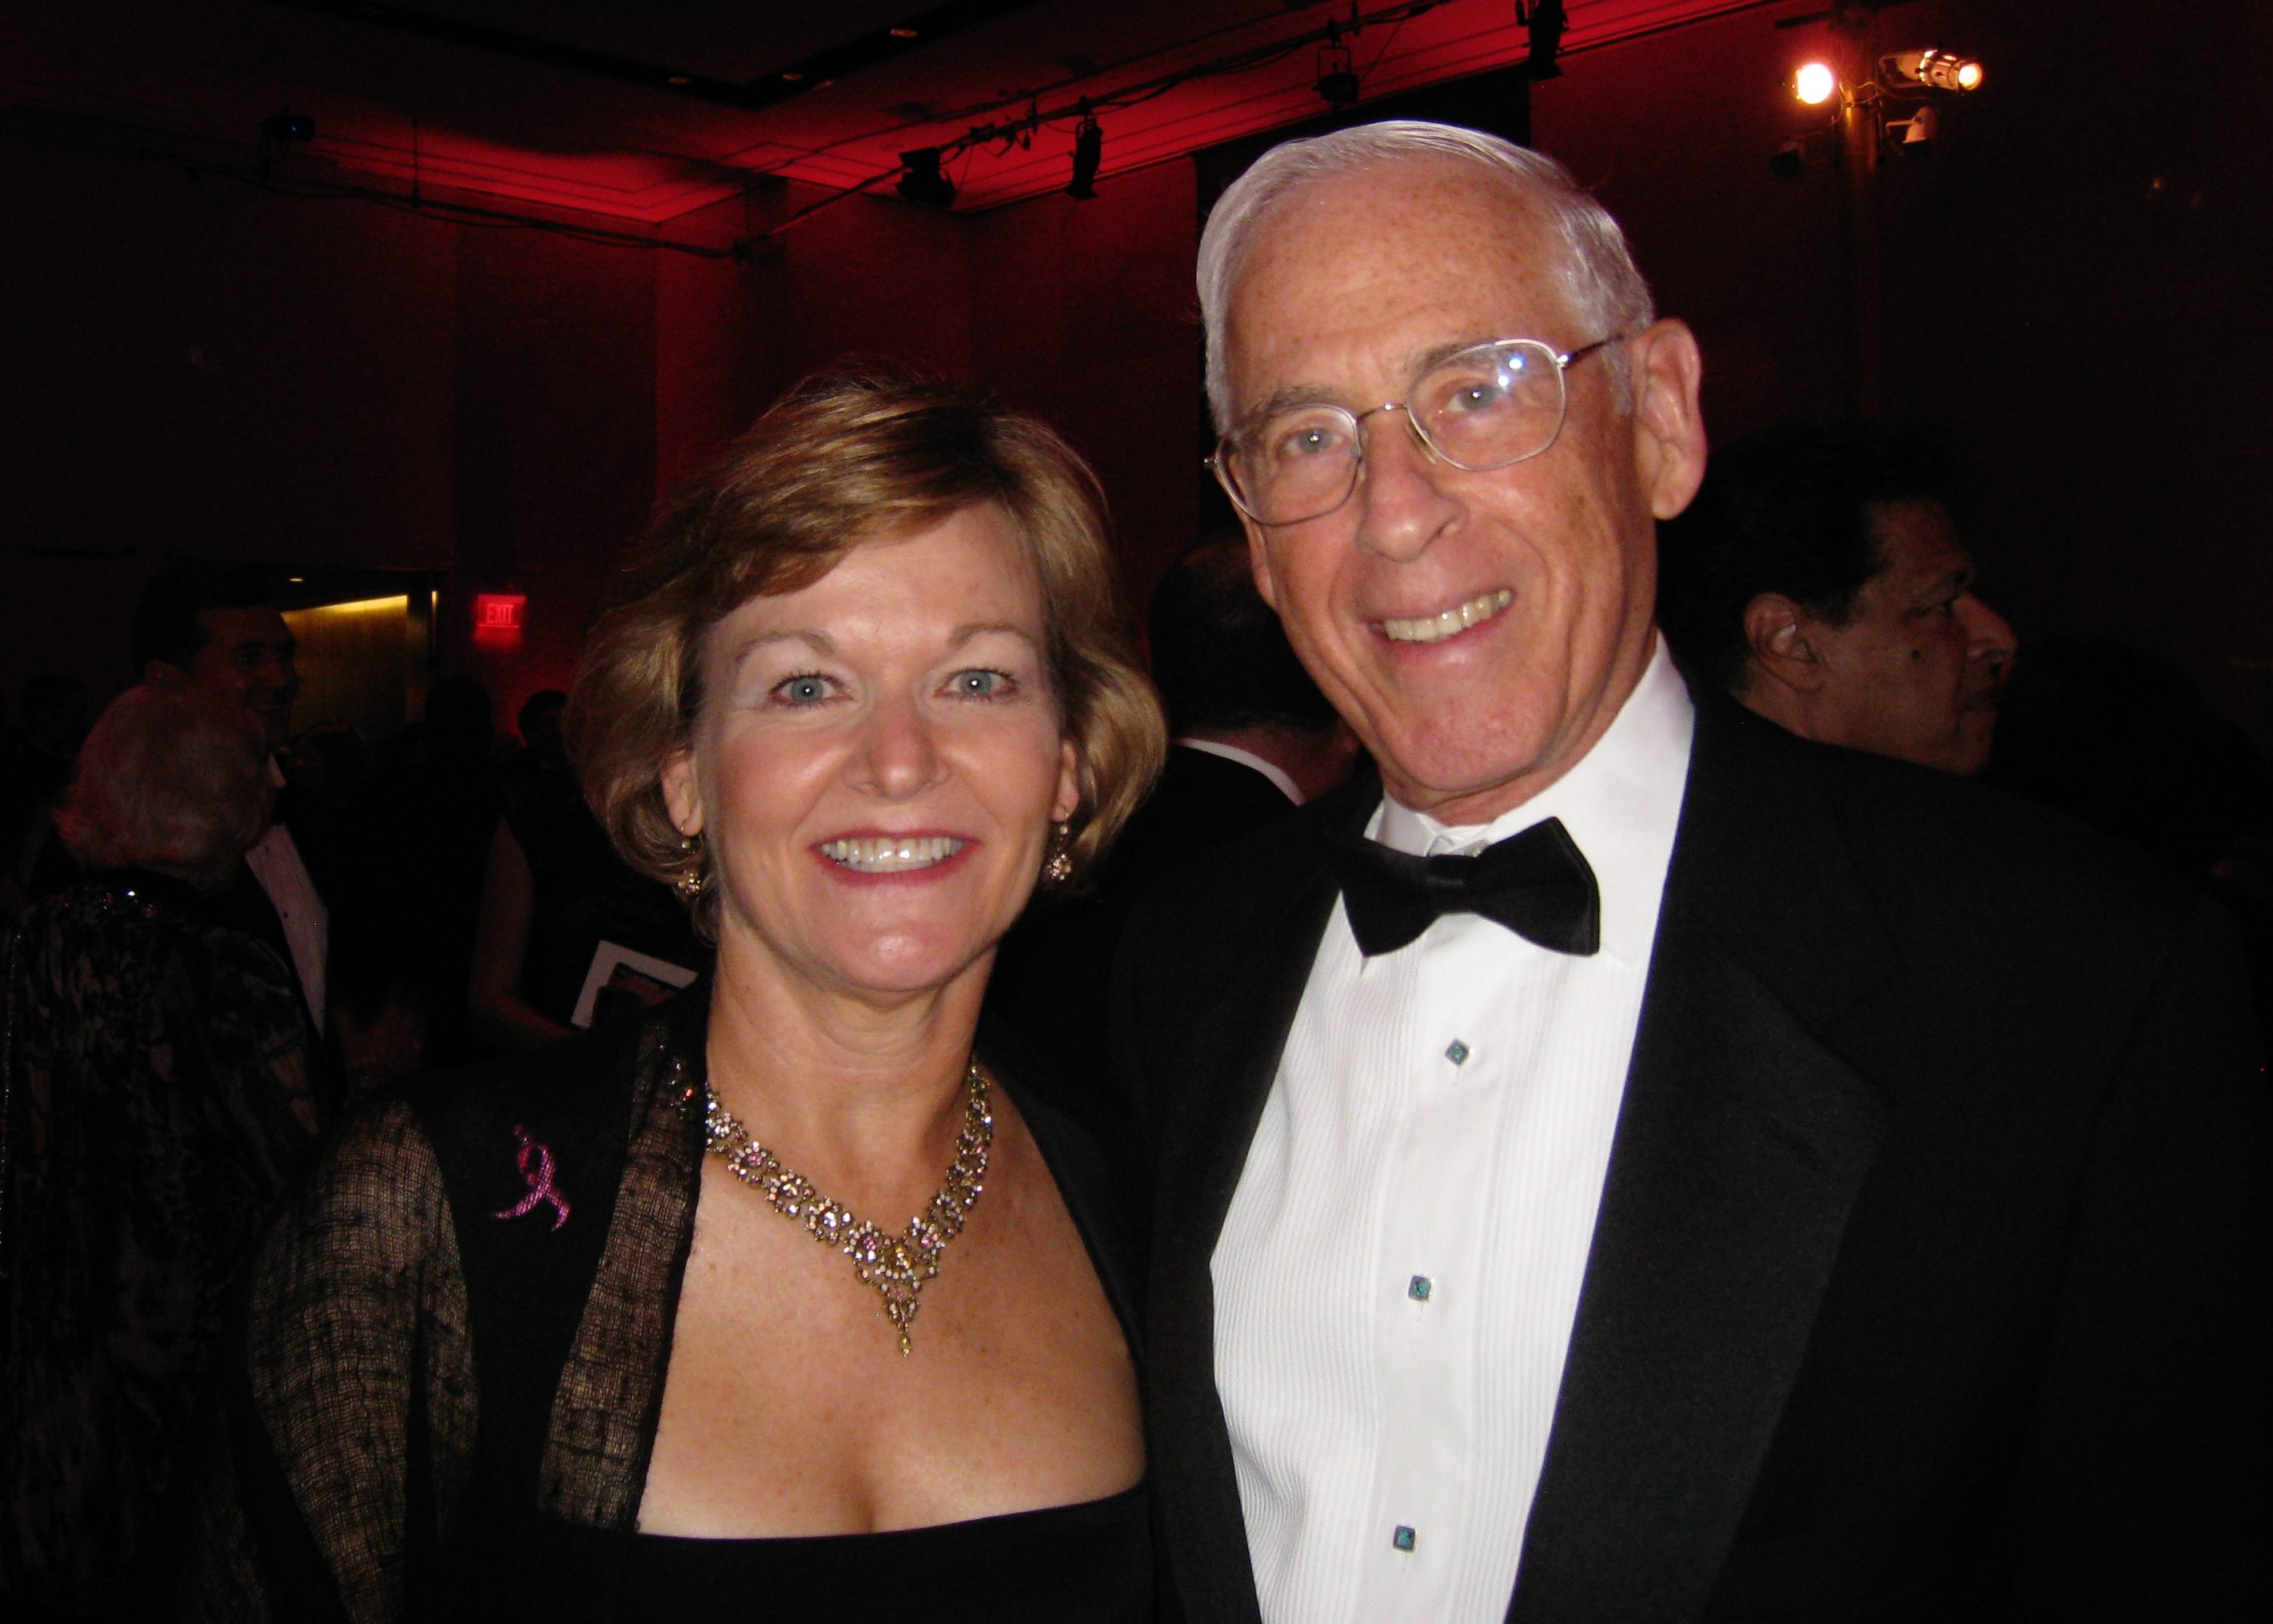 Dorothy Paterson, Susan G. Komen for the Cure® board member, and John Mendelsohn, M.D., at Komen's 2010 gala at the John F. Kennedy Center for the Performing Arts in Washington, D.C. Photo courtesy of Dorothy Paterson.